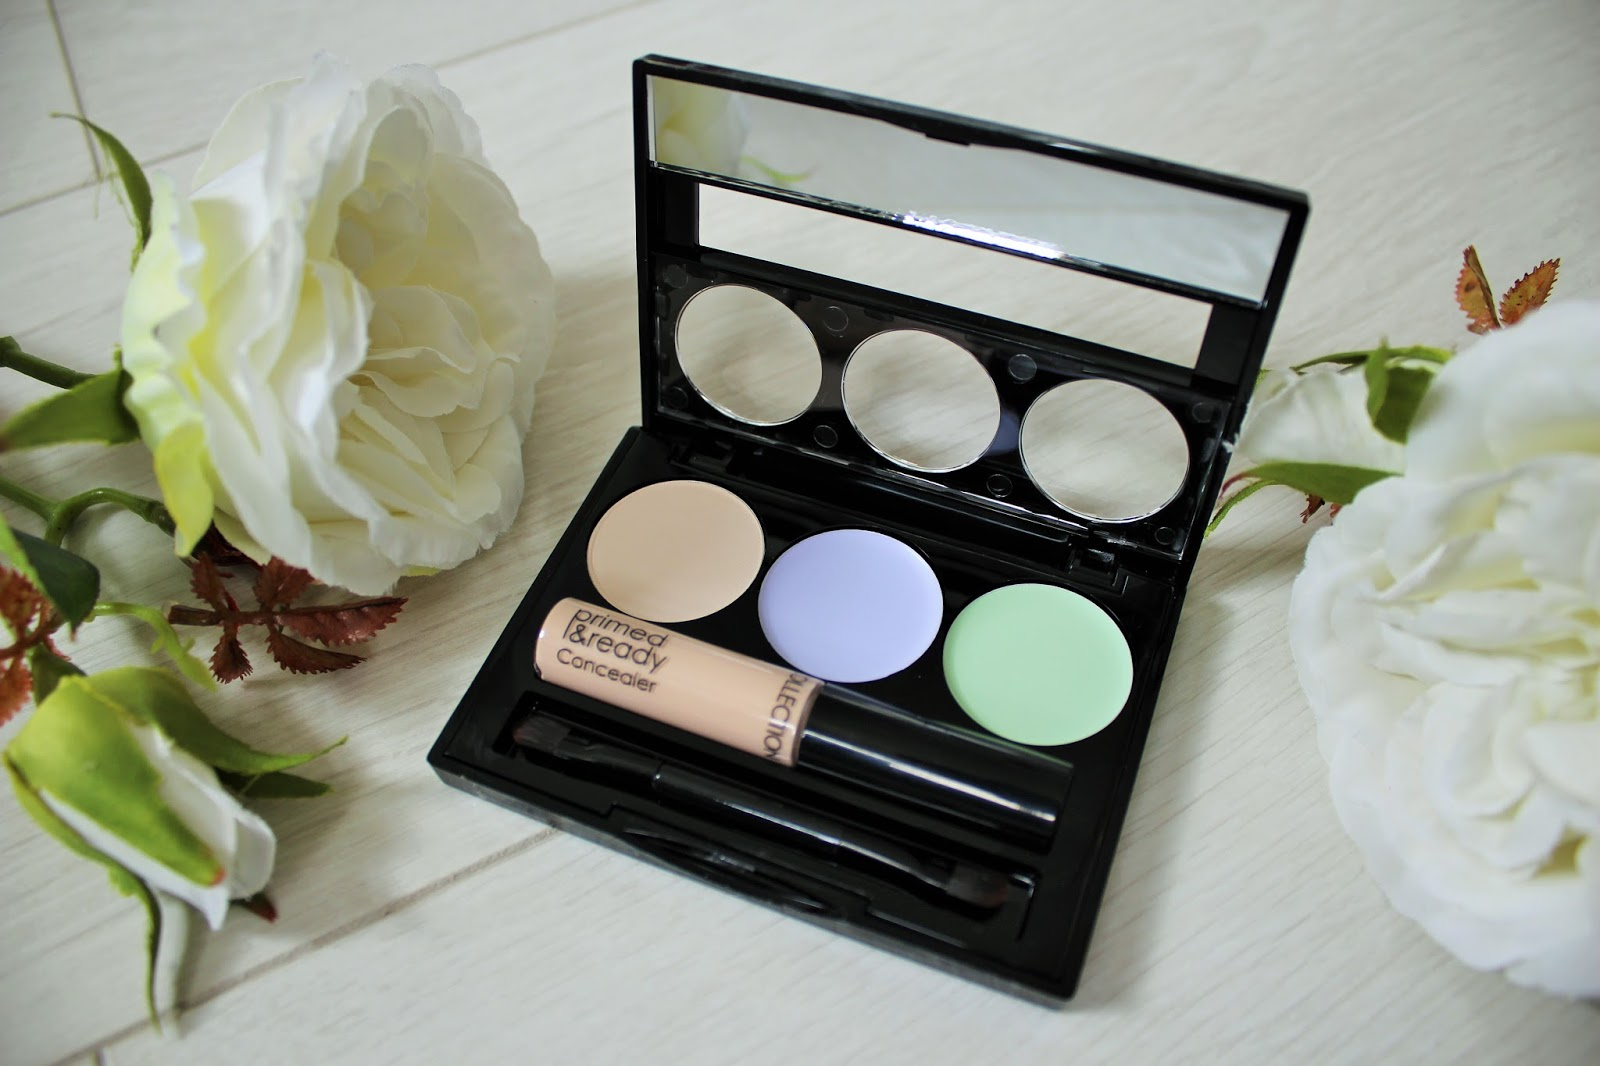 Collection Primed & Ready Correct & Conceal Palette Review - 2